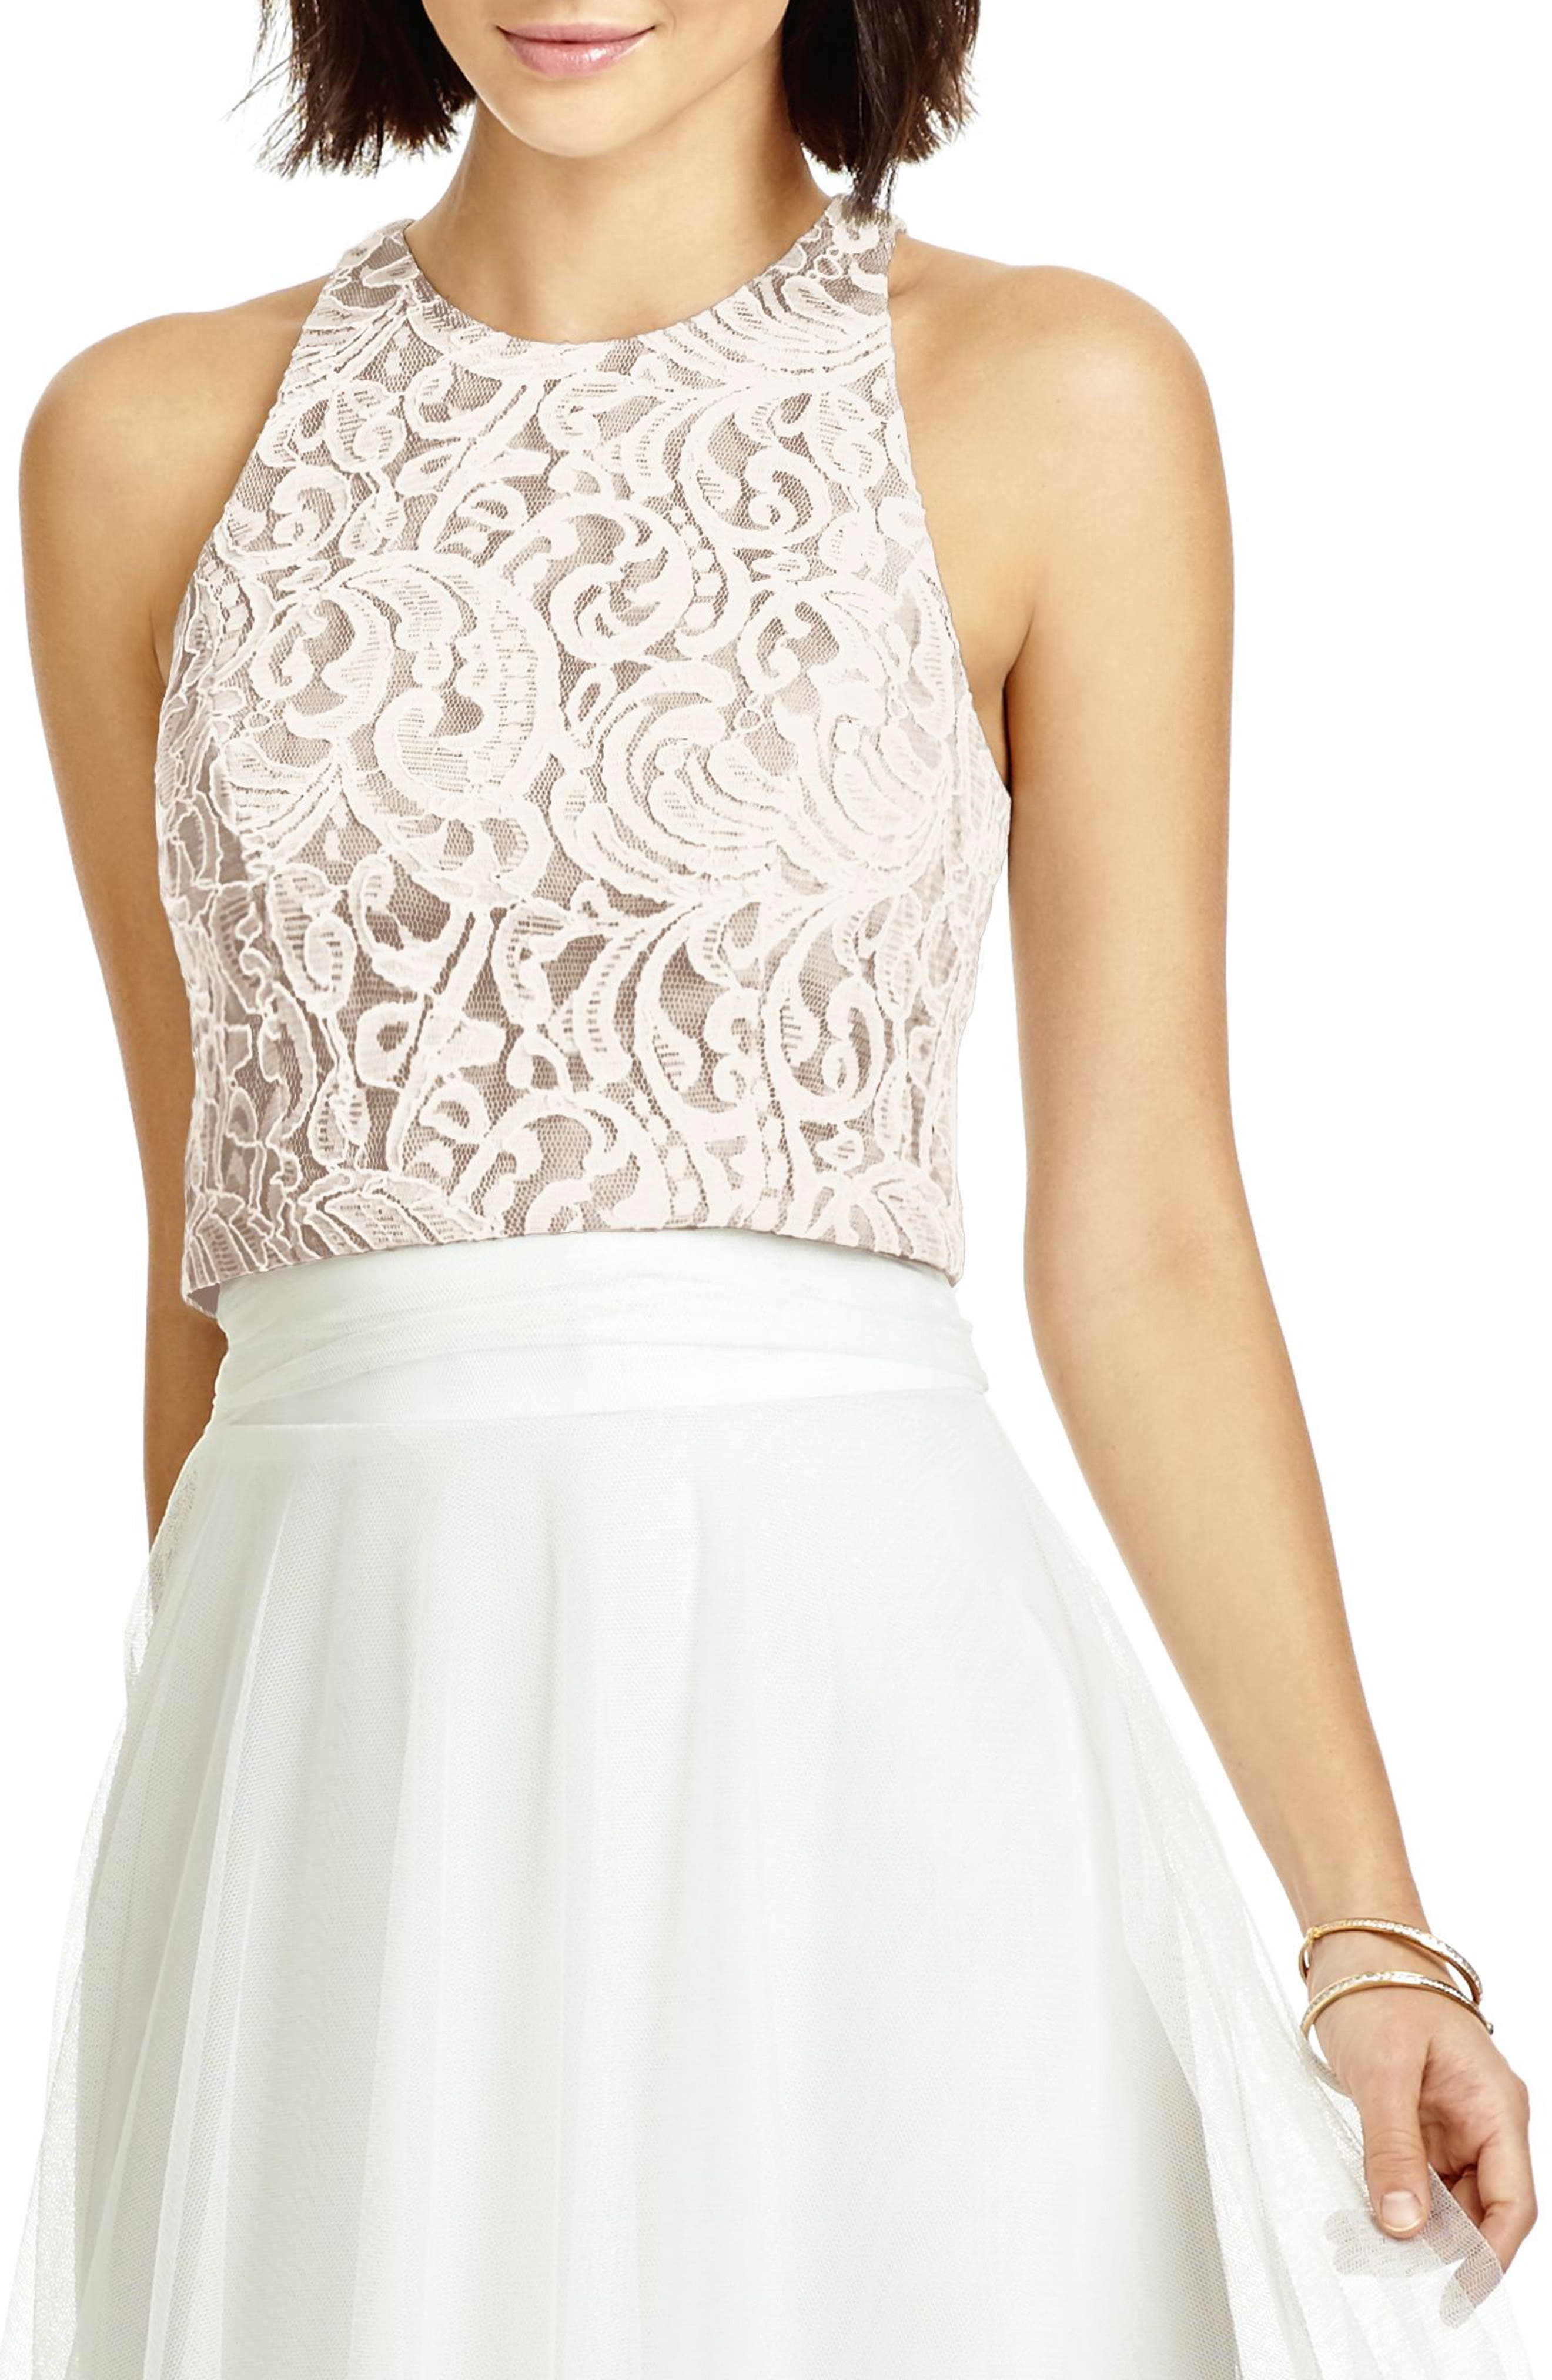 Lace Halter Style Crop Top,                         Main,                         color, Ivory Lace/ Topaz/ Ivory